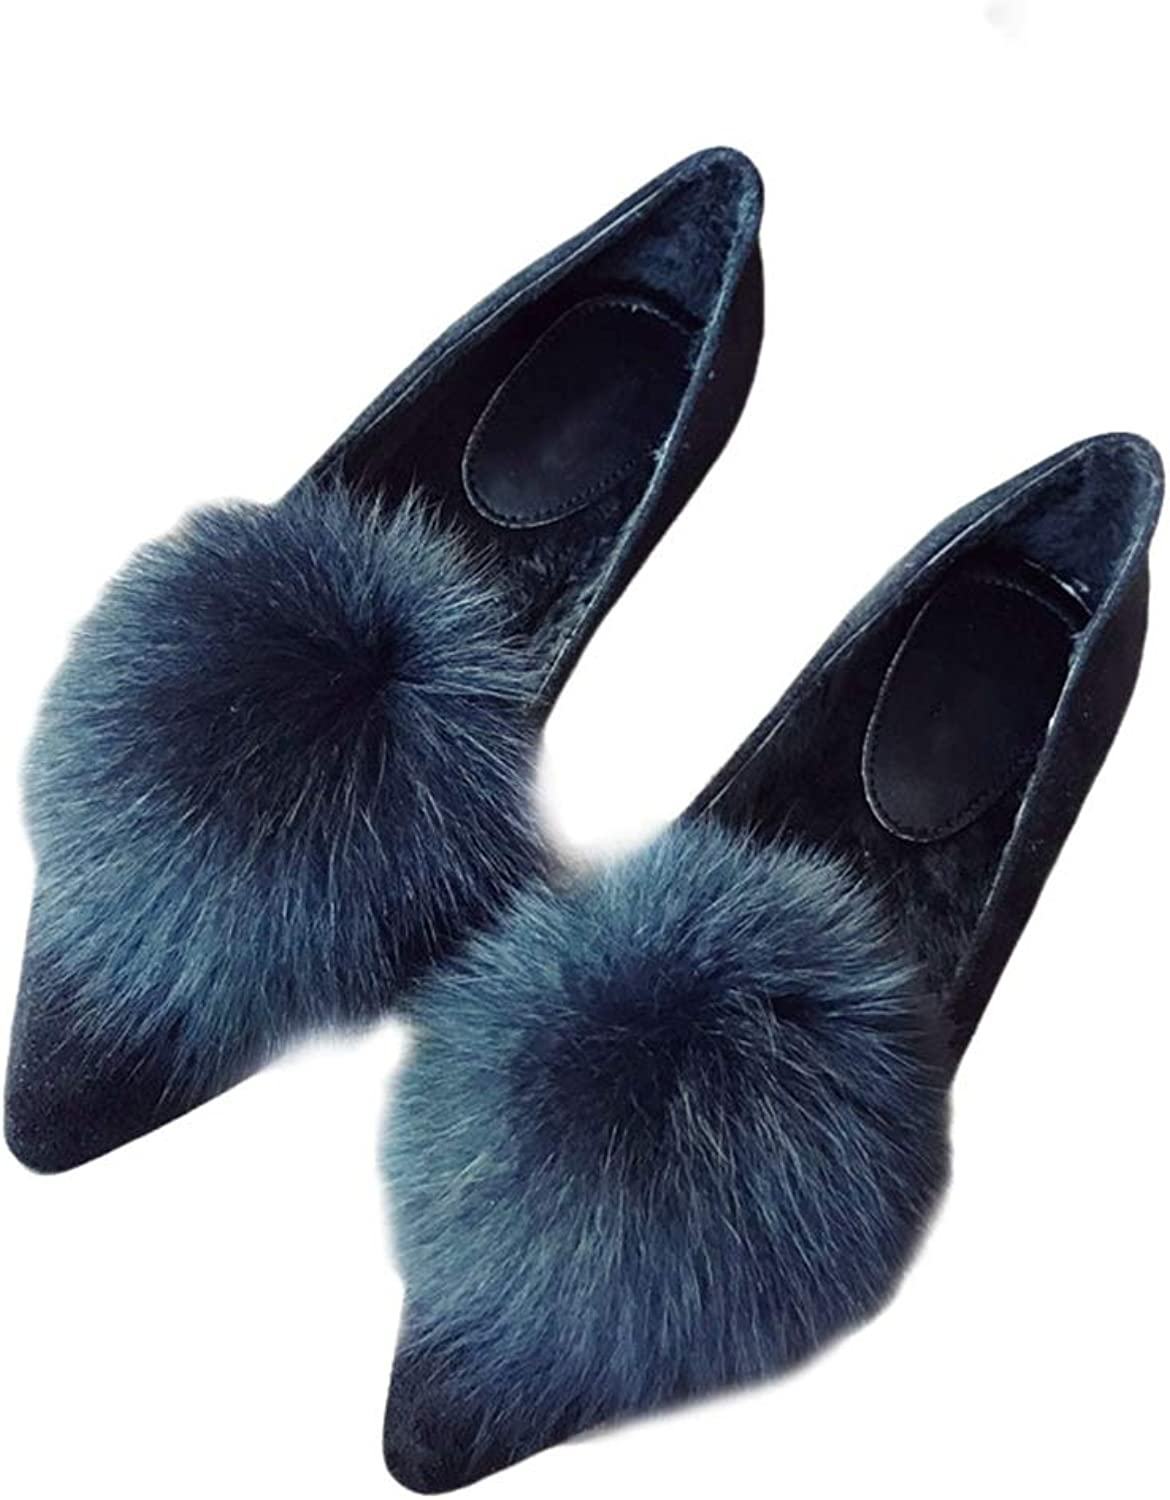 August Jim Womens Flat shoes,Pointed Toe Slip On Fuzzy Ball Soft Suede Dress shoes